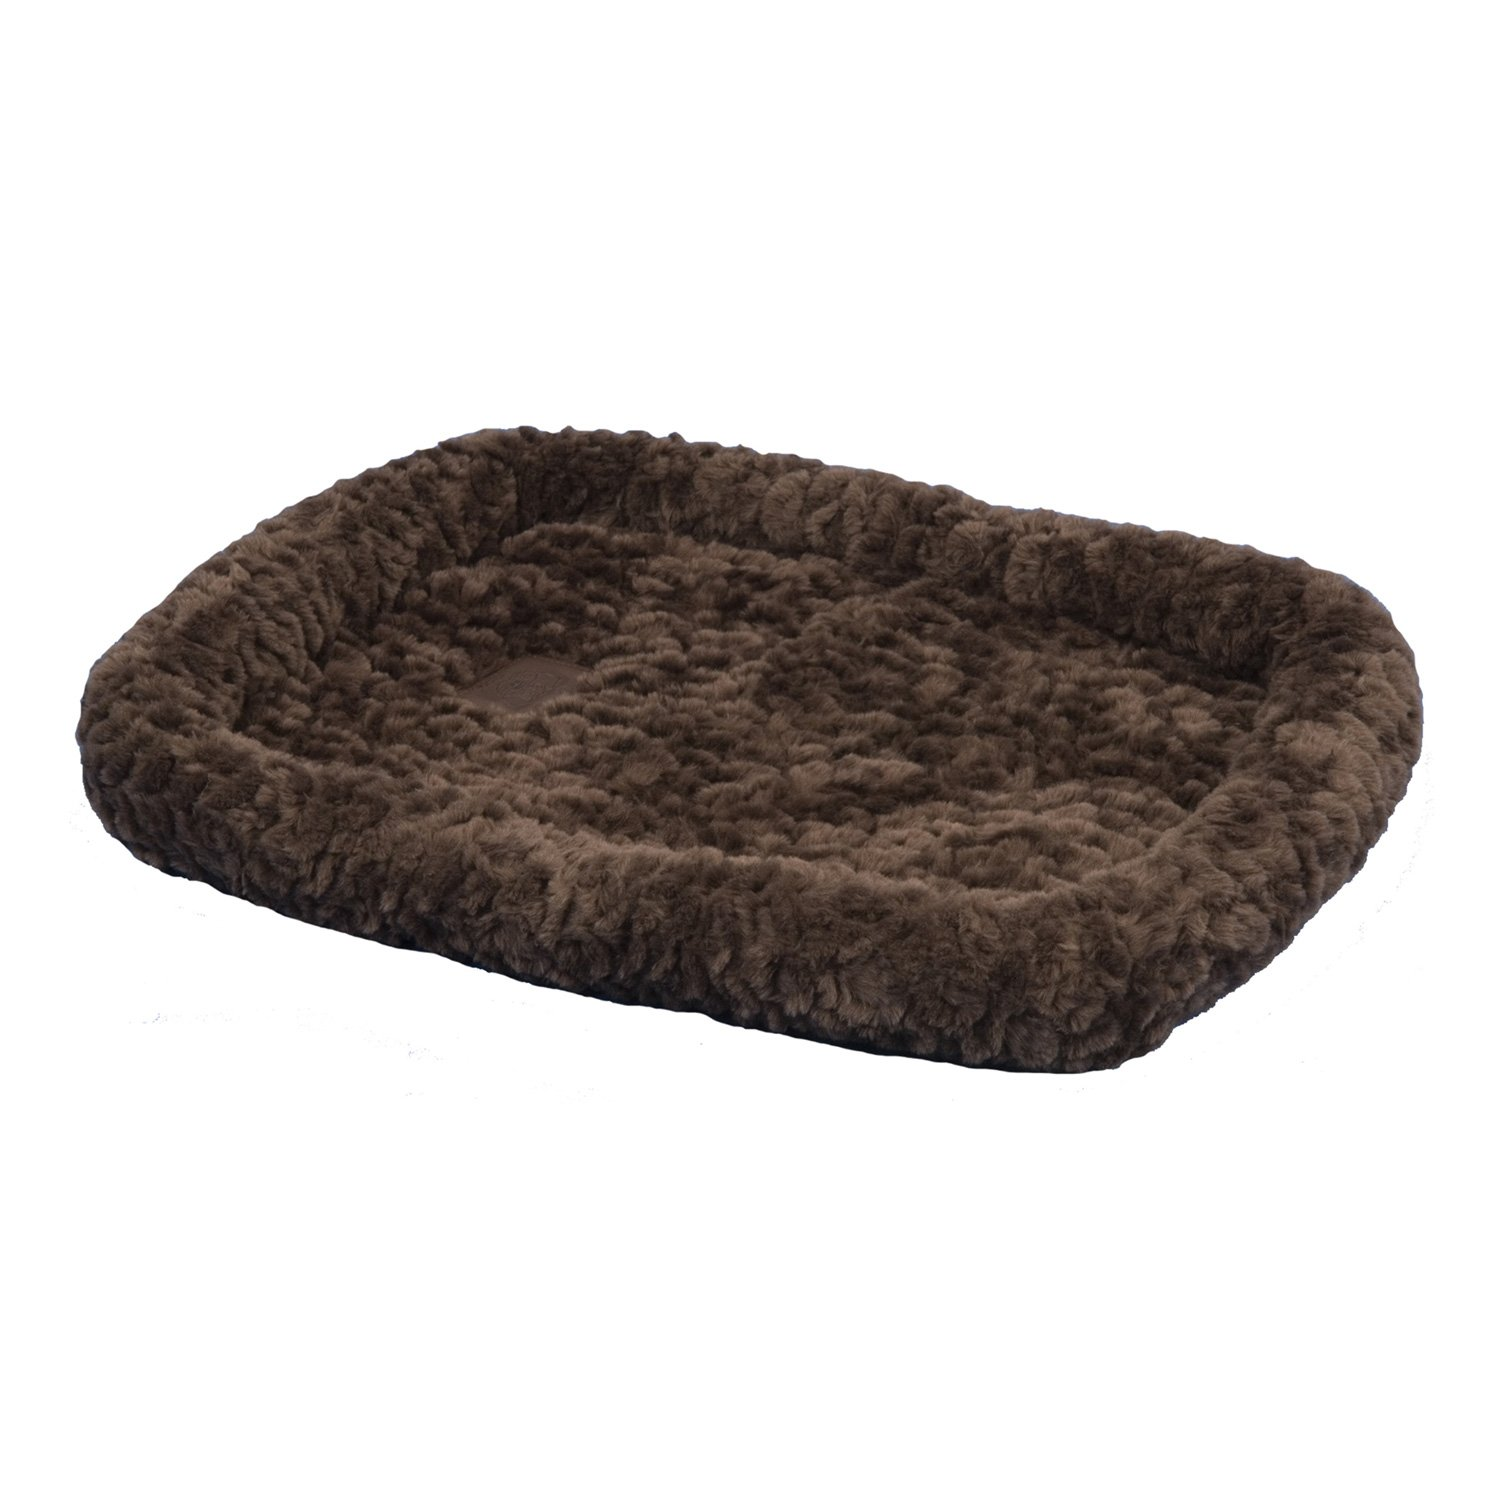 Precision Pet SnooZZy Chocolate Brown Cozy Crate Beds